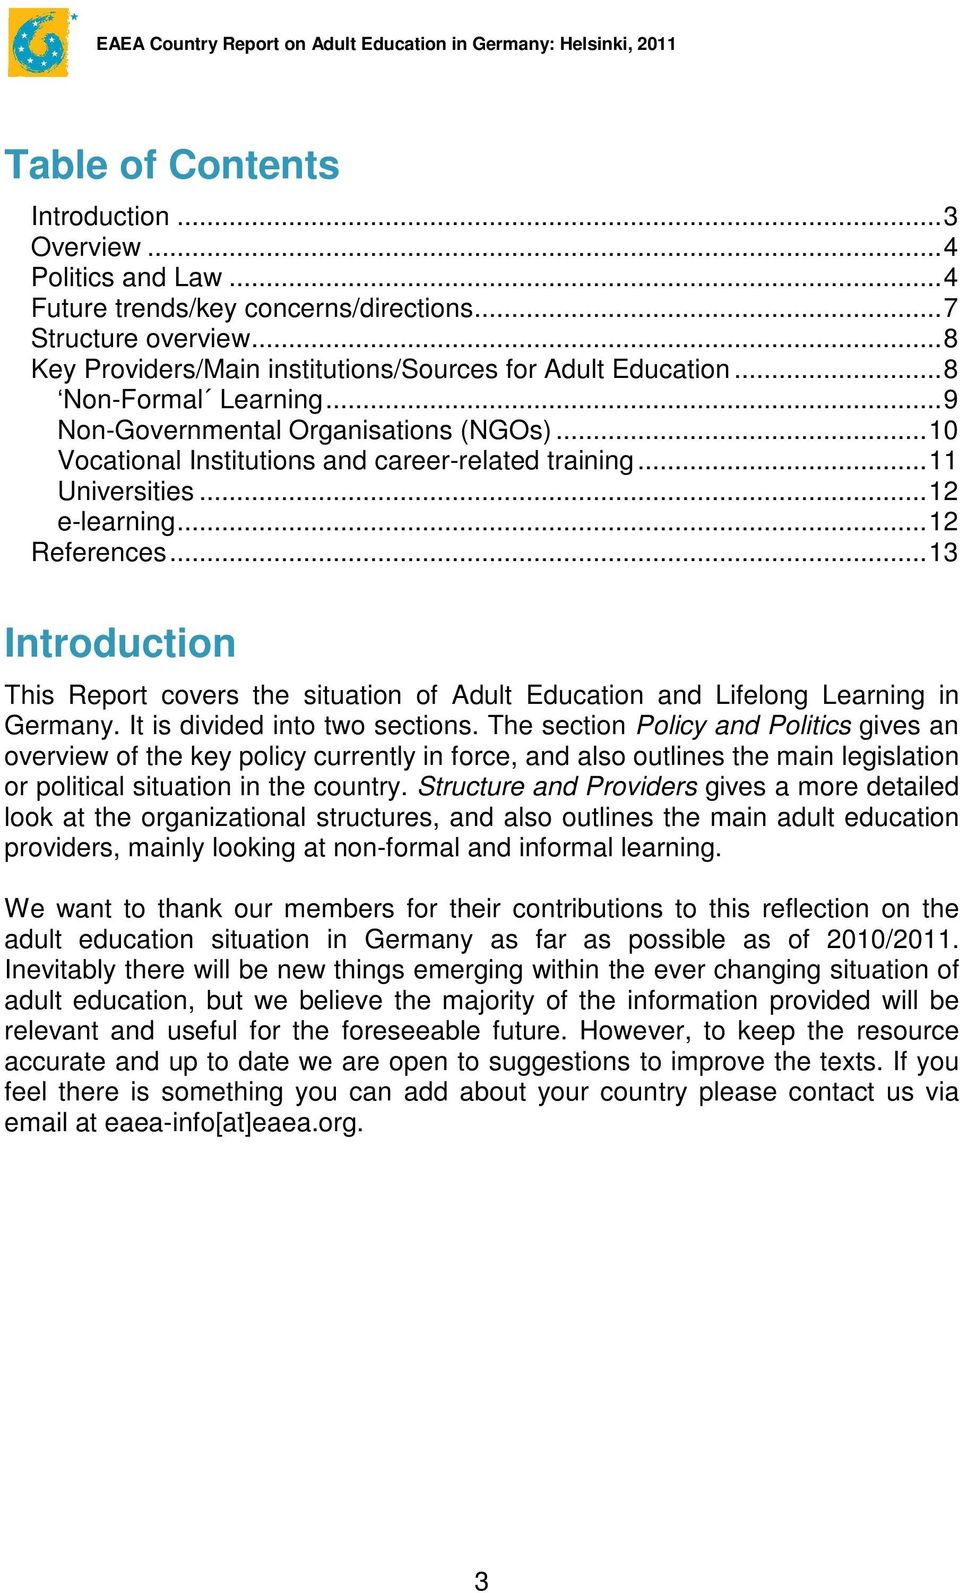 ..13 Introduction This Report covers the situation of Adult Education and Lifelong Learning in Germany. It is divided into two sections.